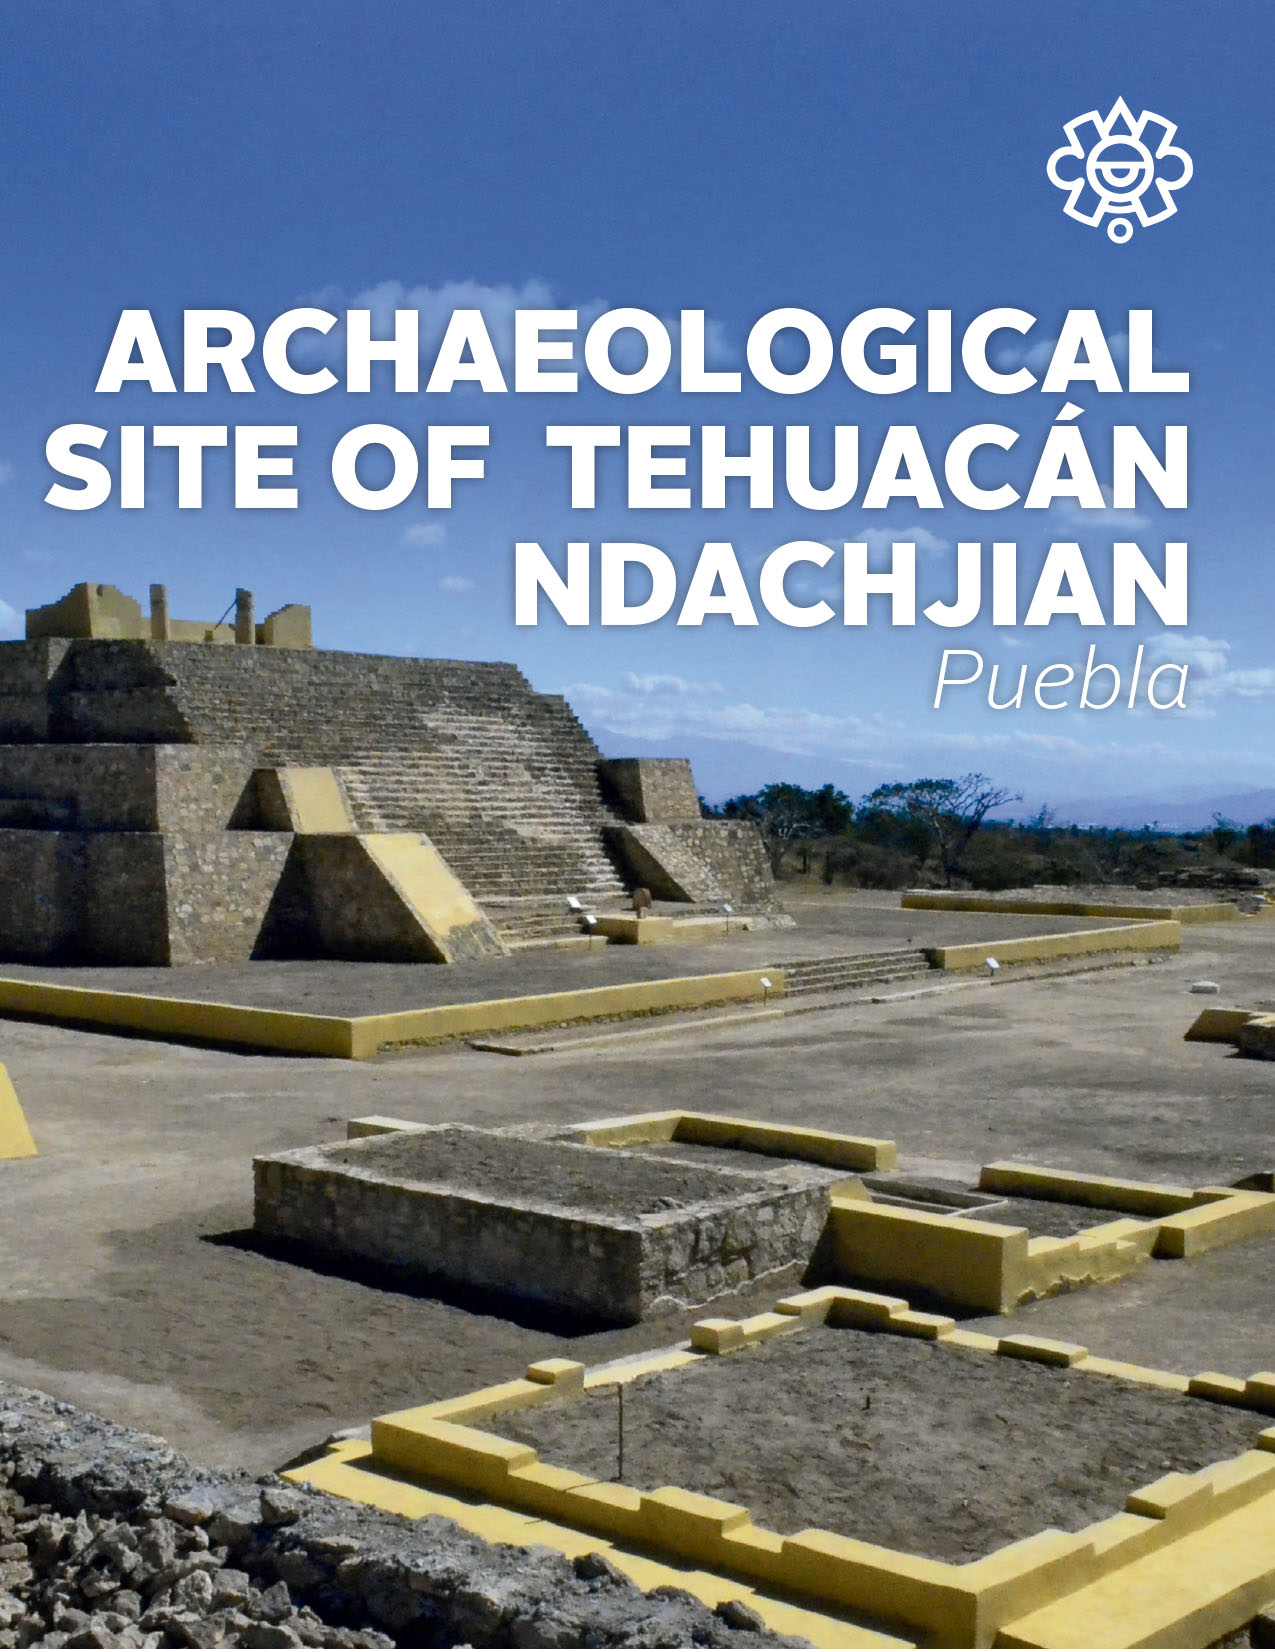 Archaeological Site of Tehuacán Ndachjian